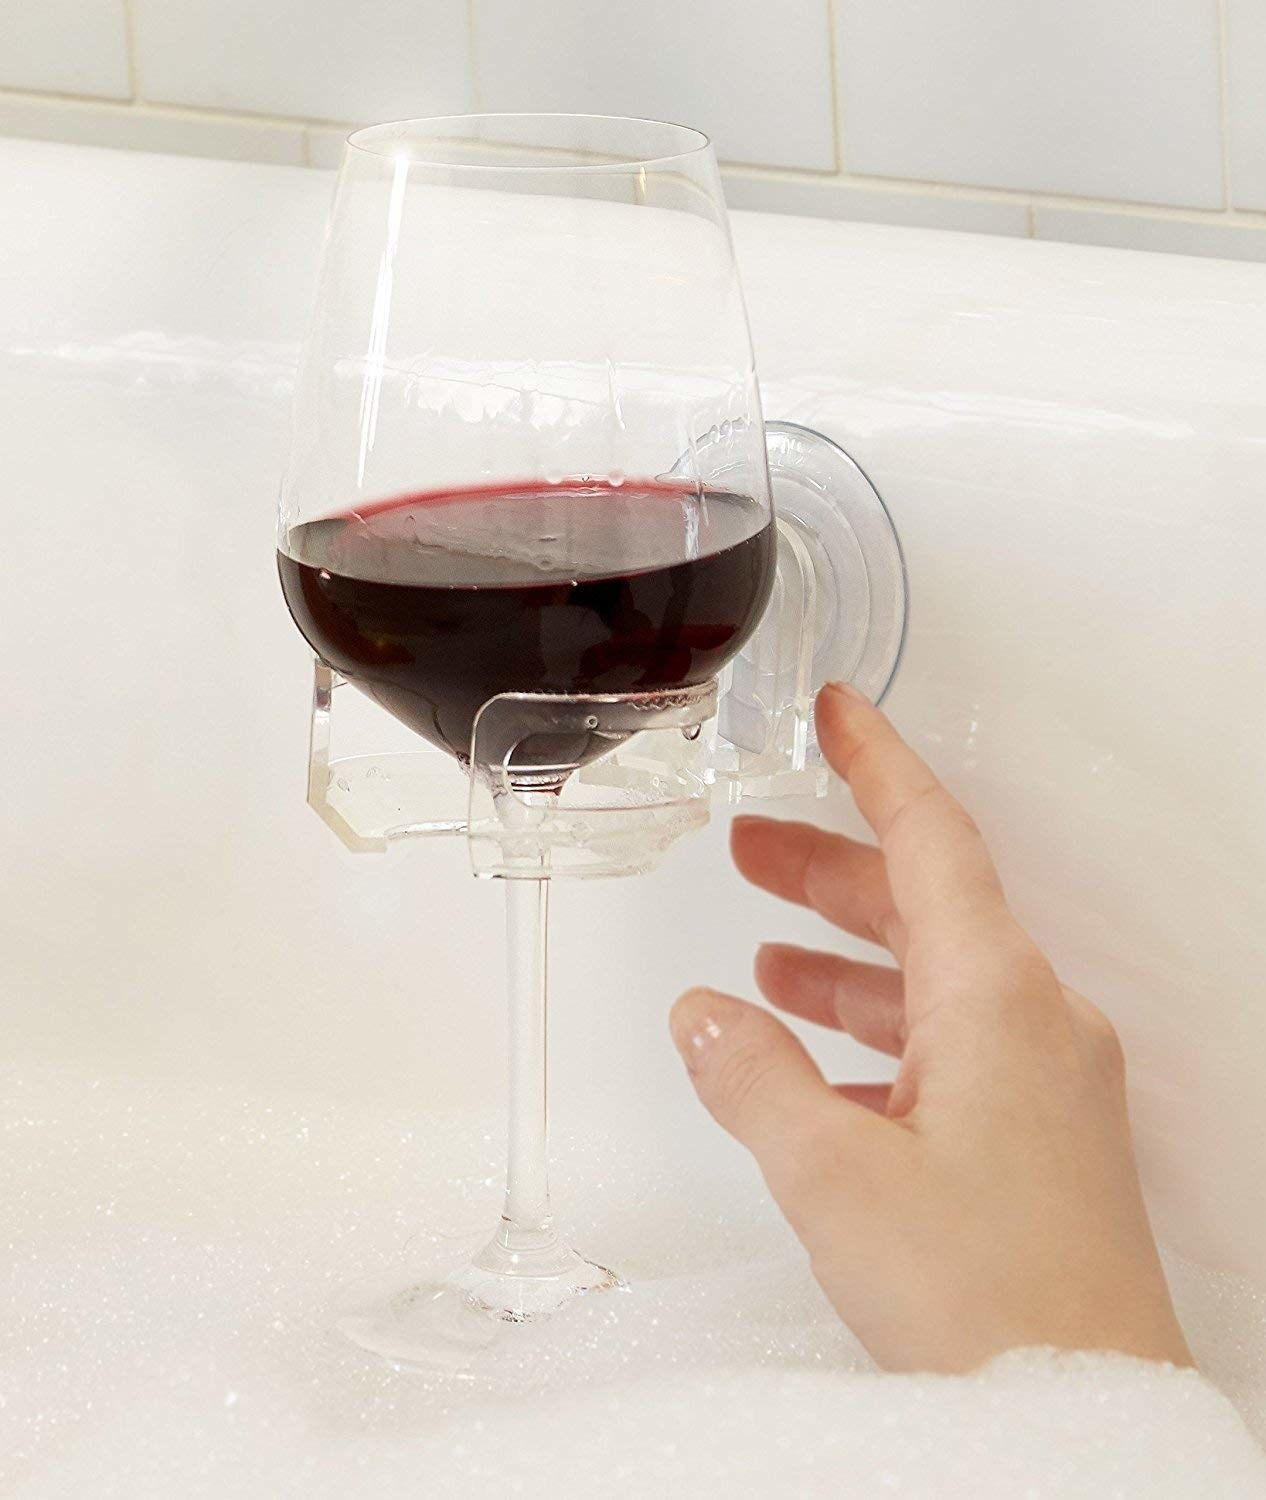 The wine caddy suctioned to the side of a tub with red wine in it